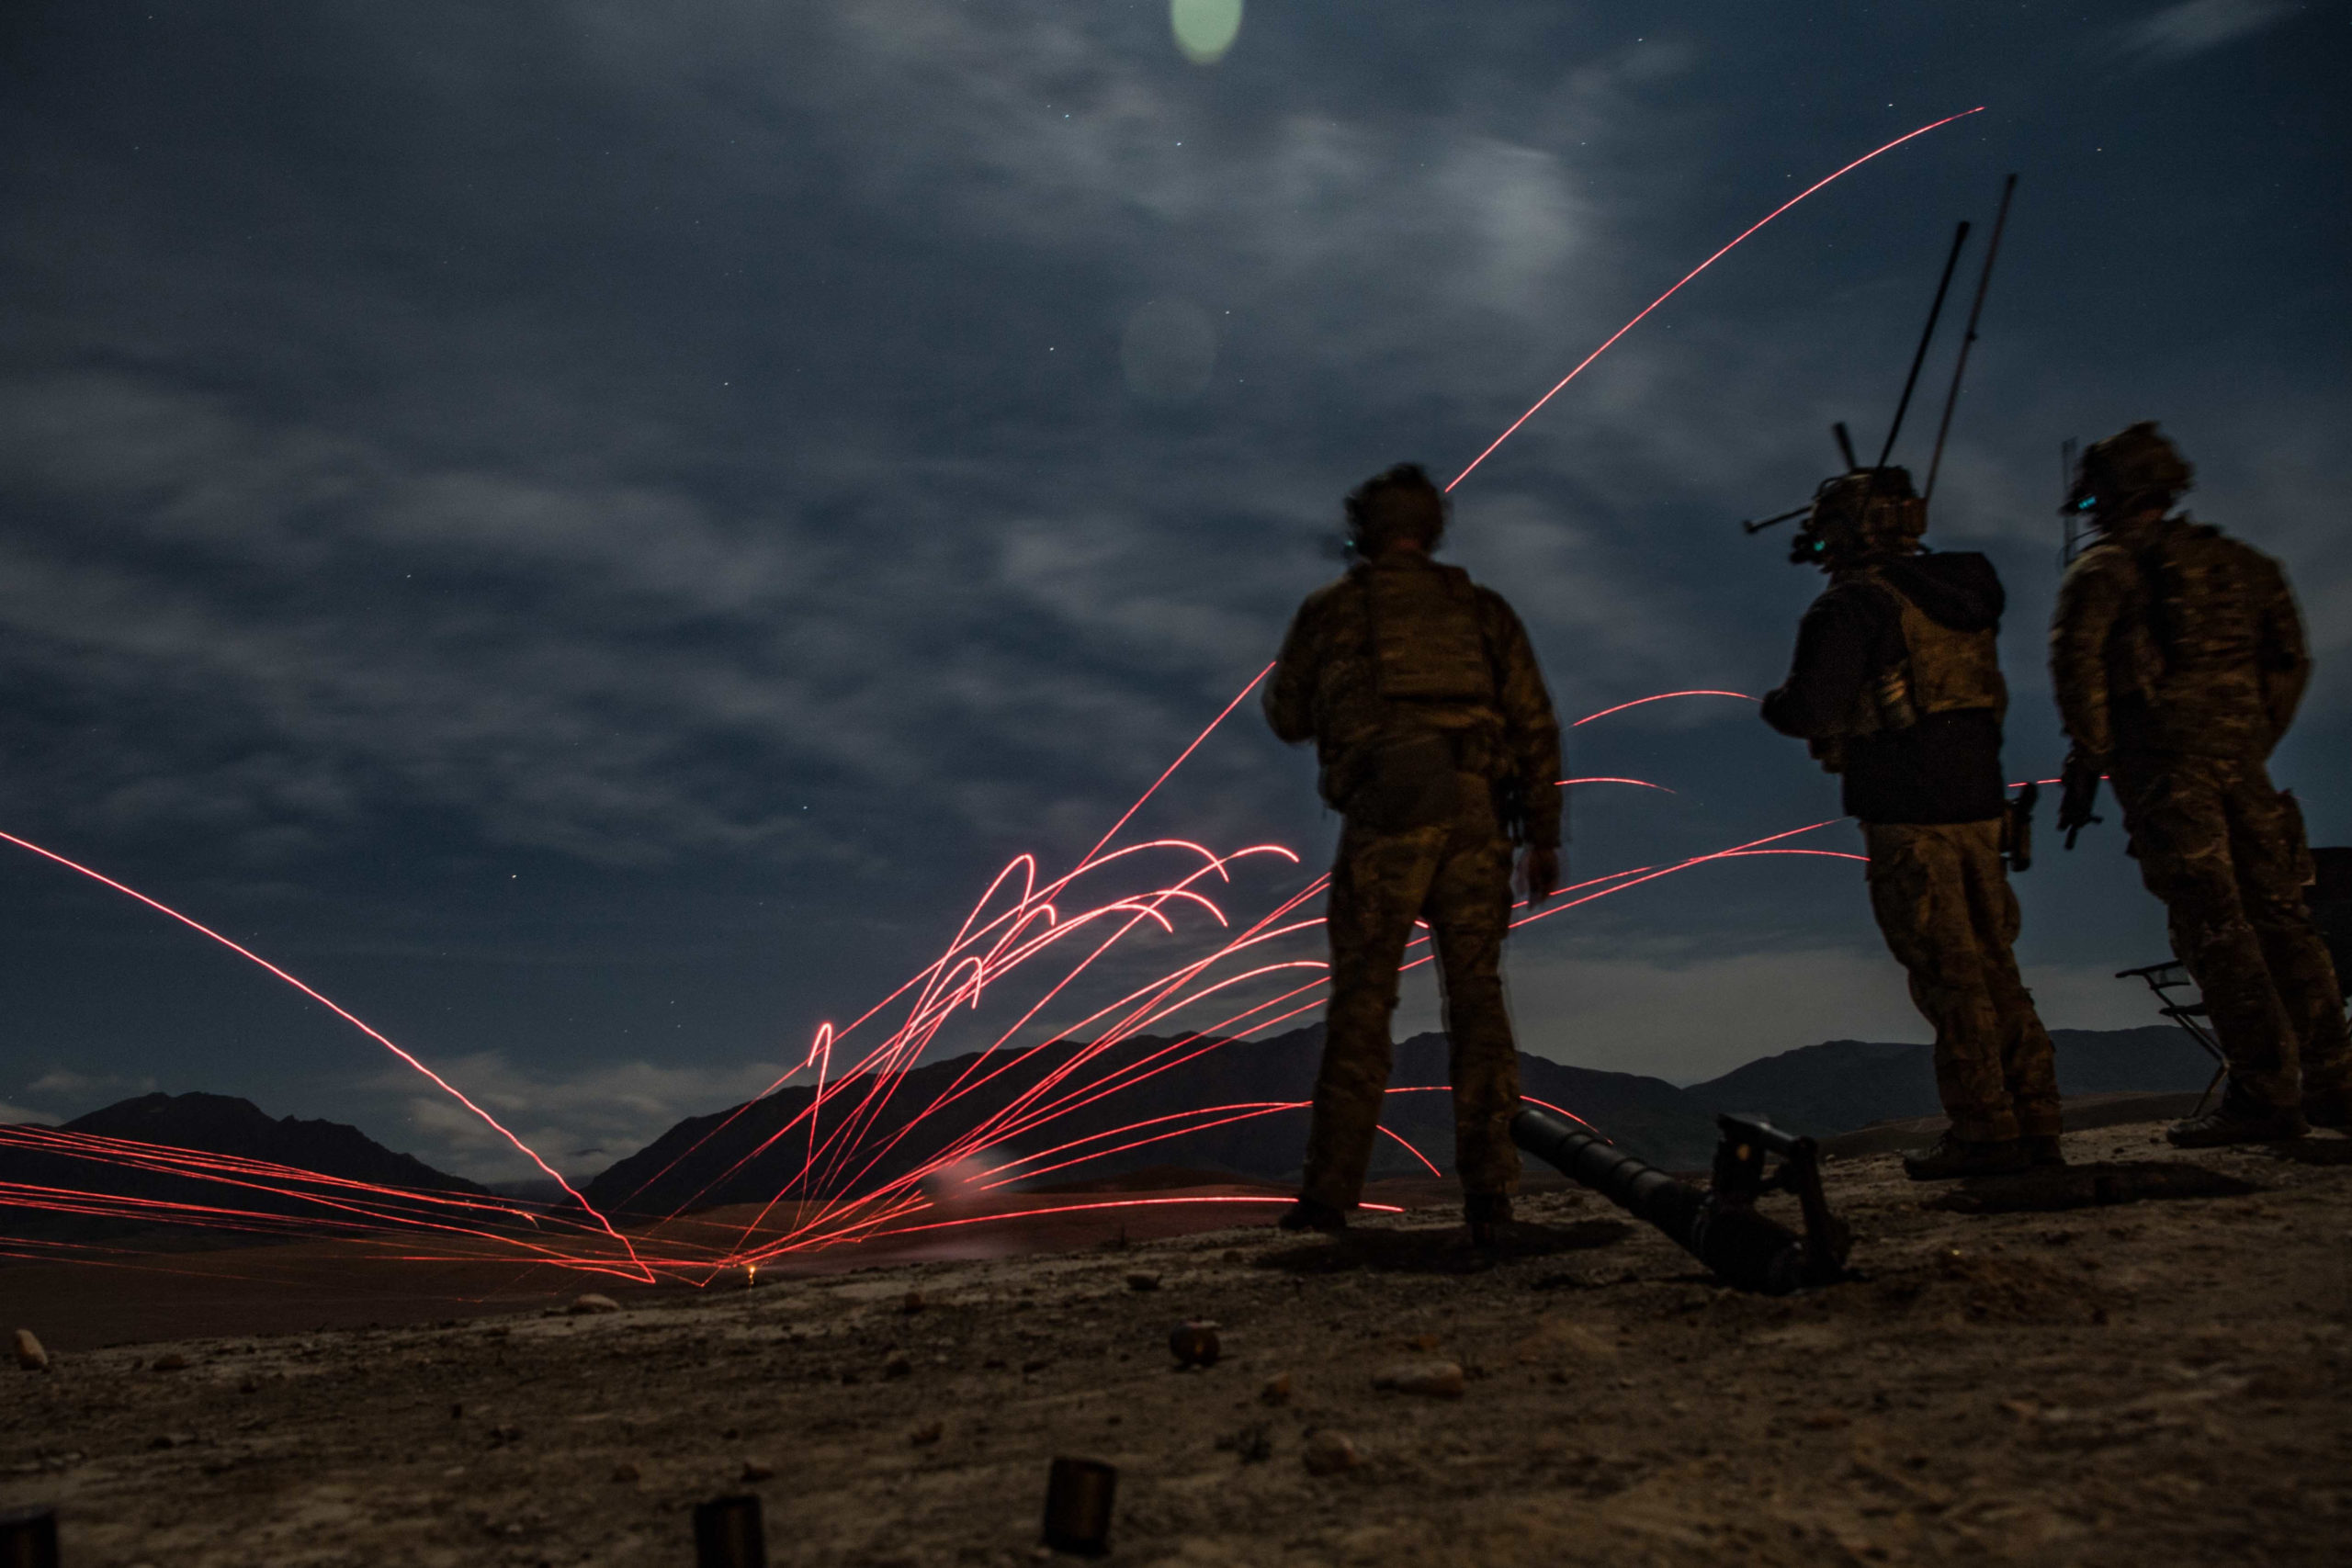 Air Force joint terminal attack controller call-for-fire training tracer rounds